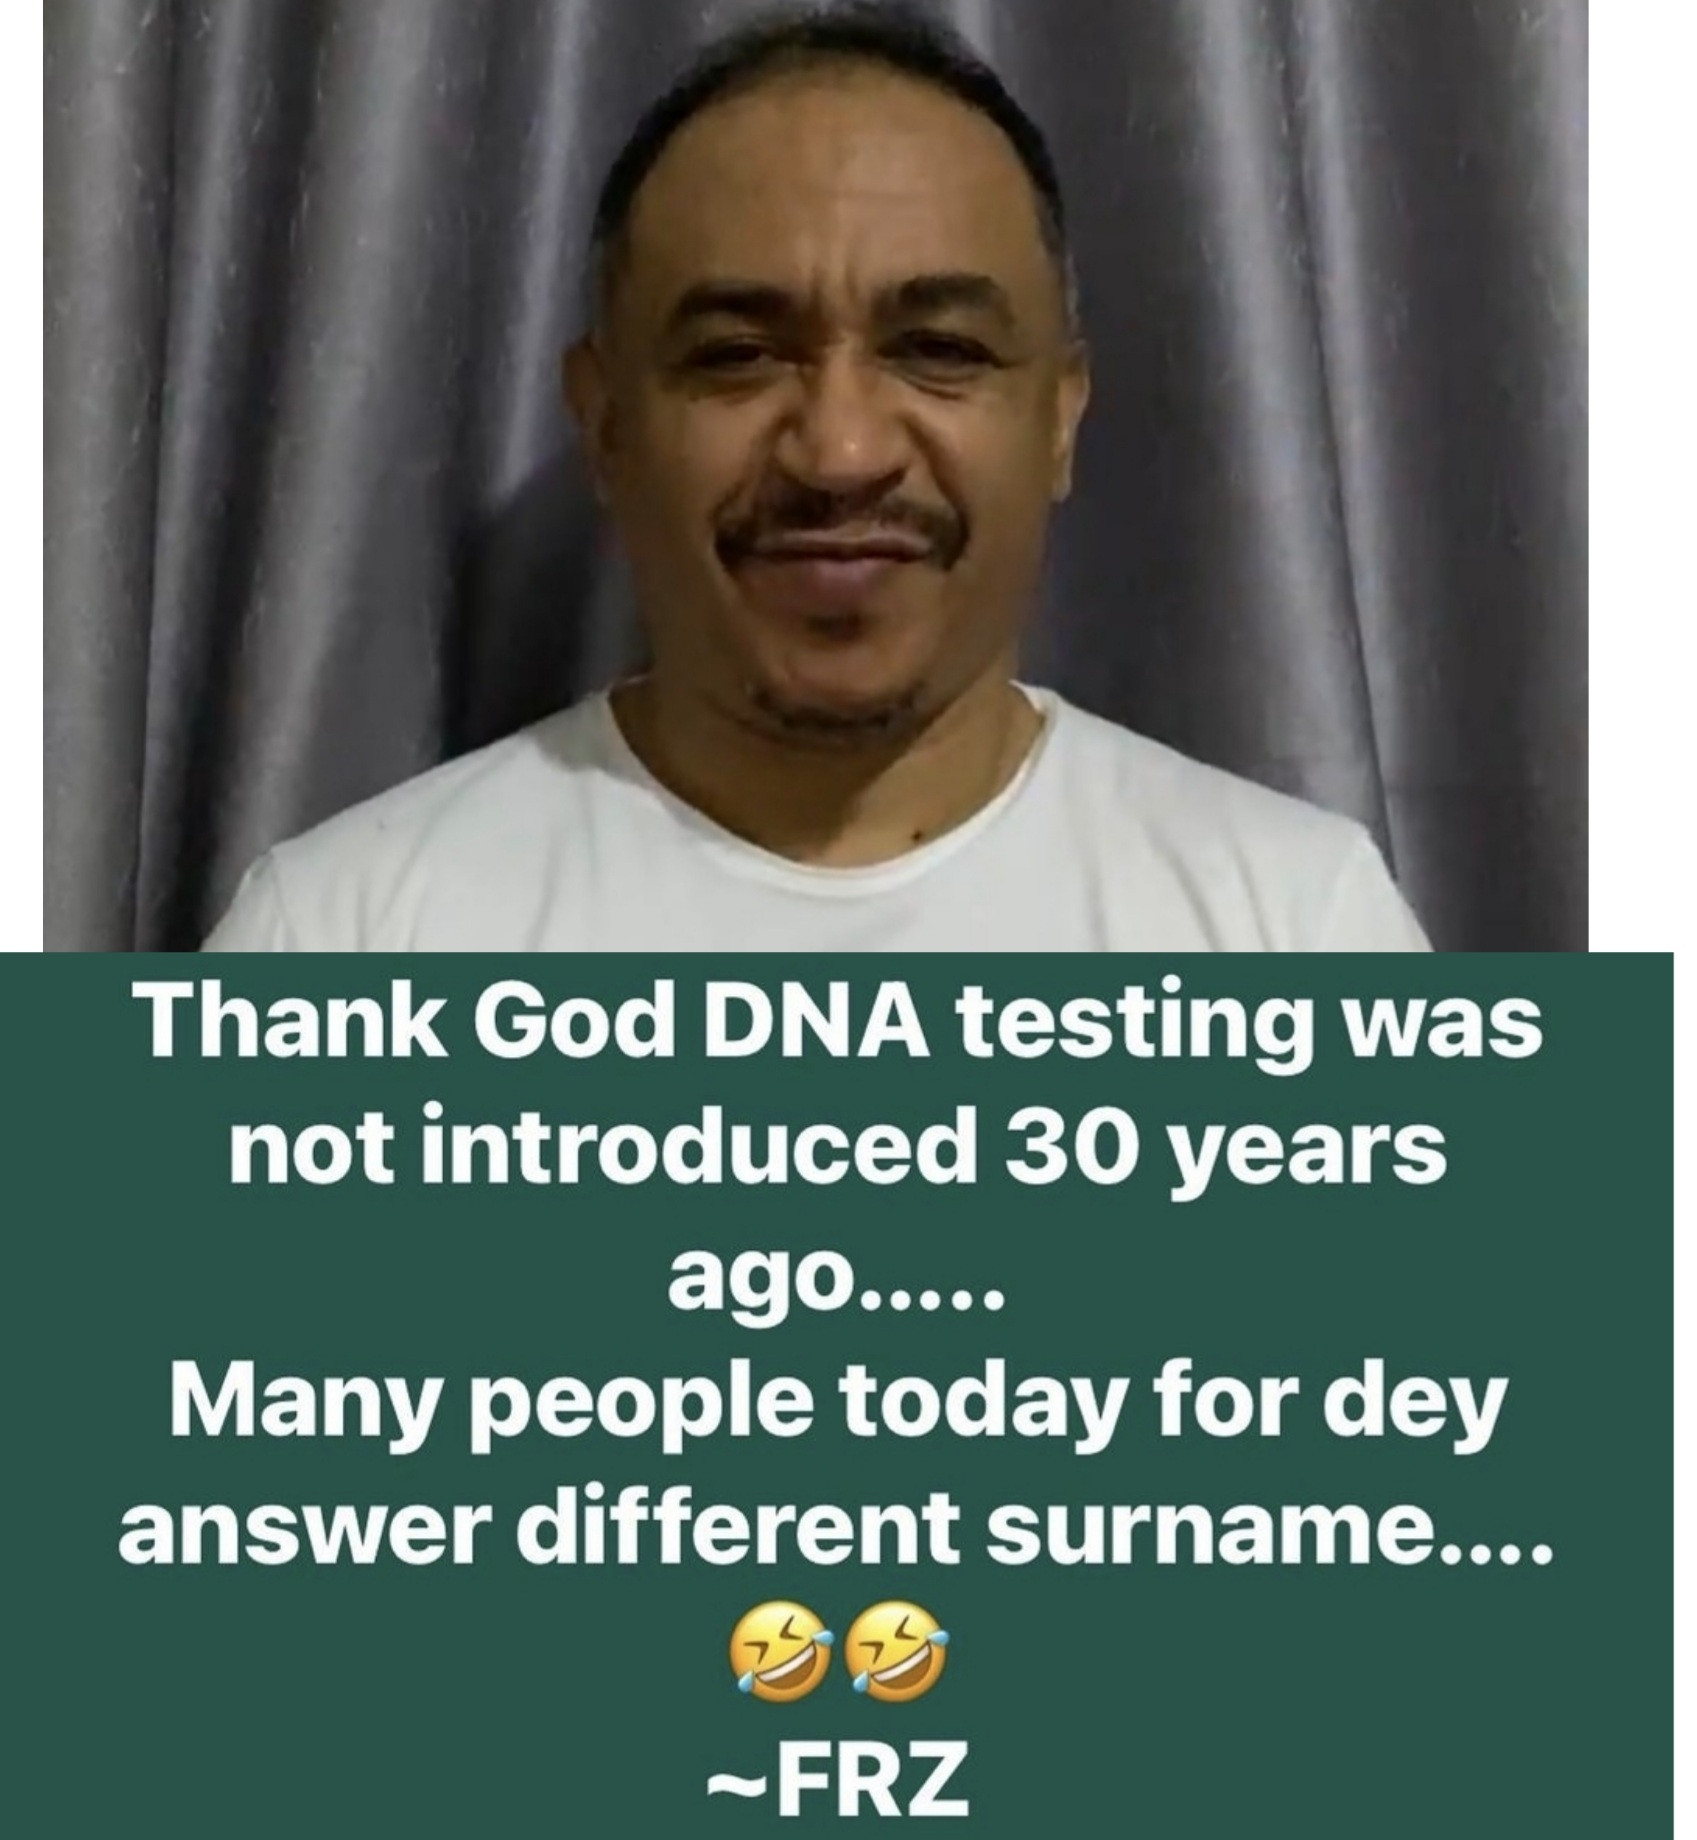 Thank God DNA testing was not introduced 30 years ago, many people today for dey answer different surname - Daddy Freeze